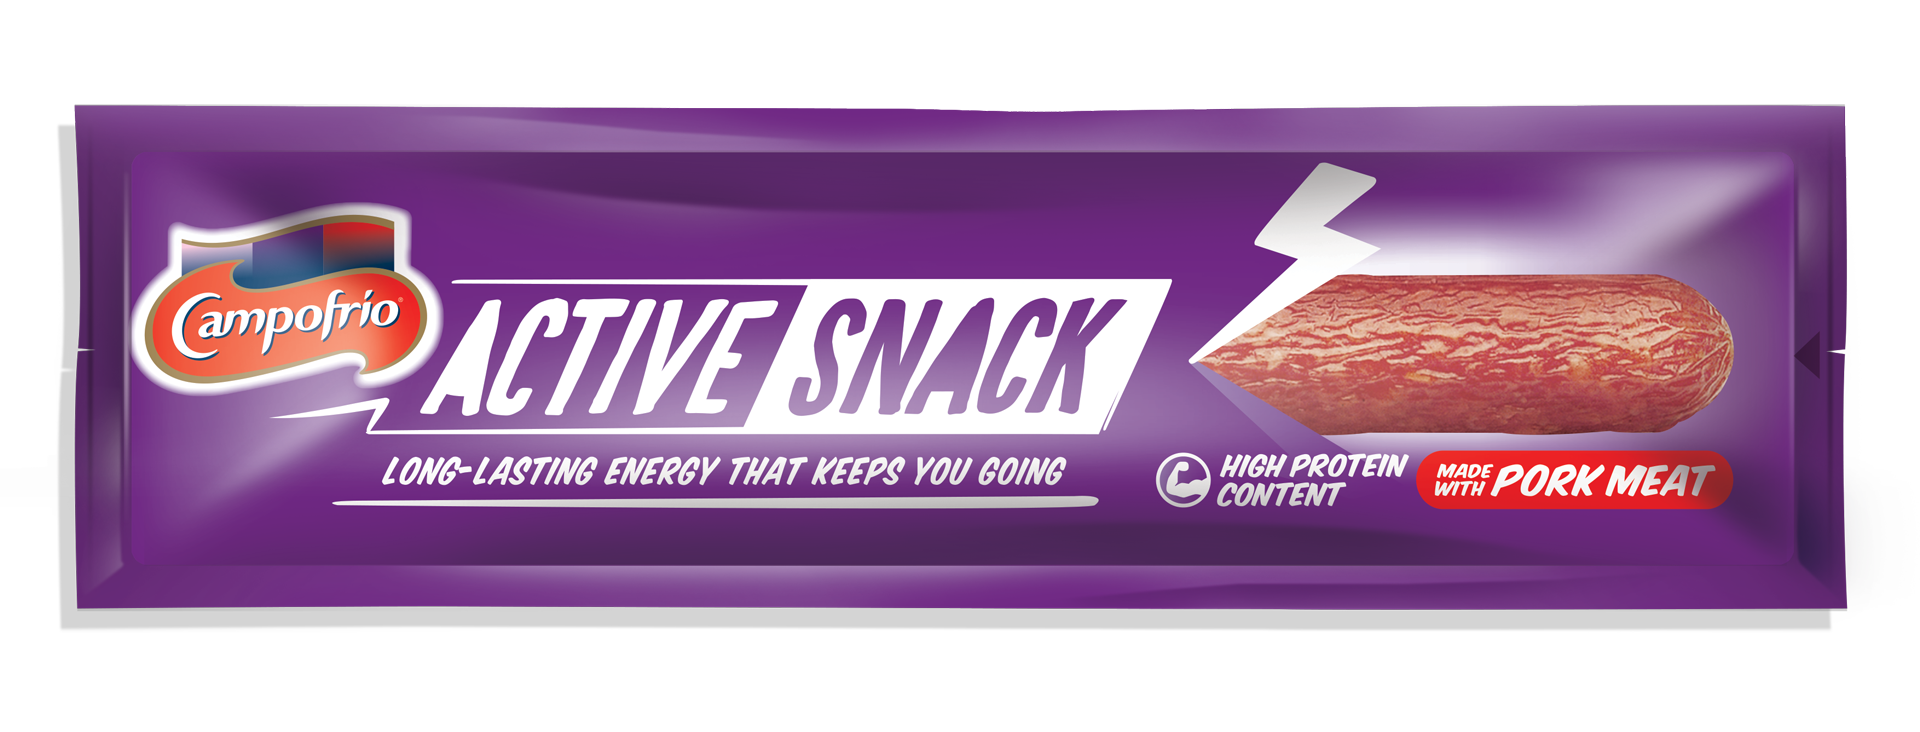 Meat Your Active Snack